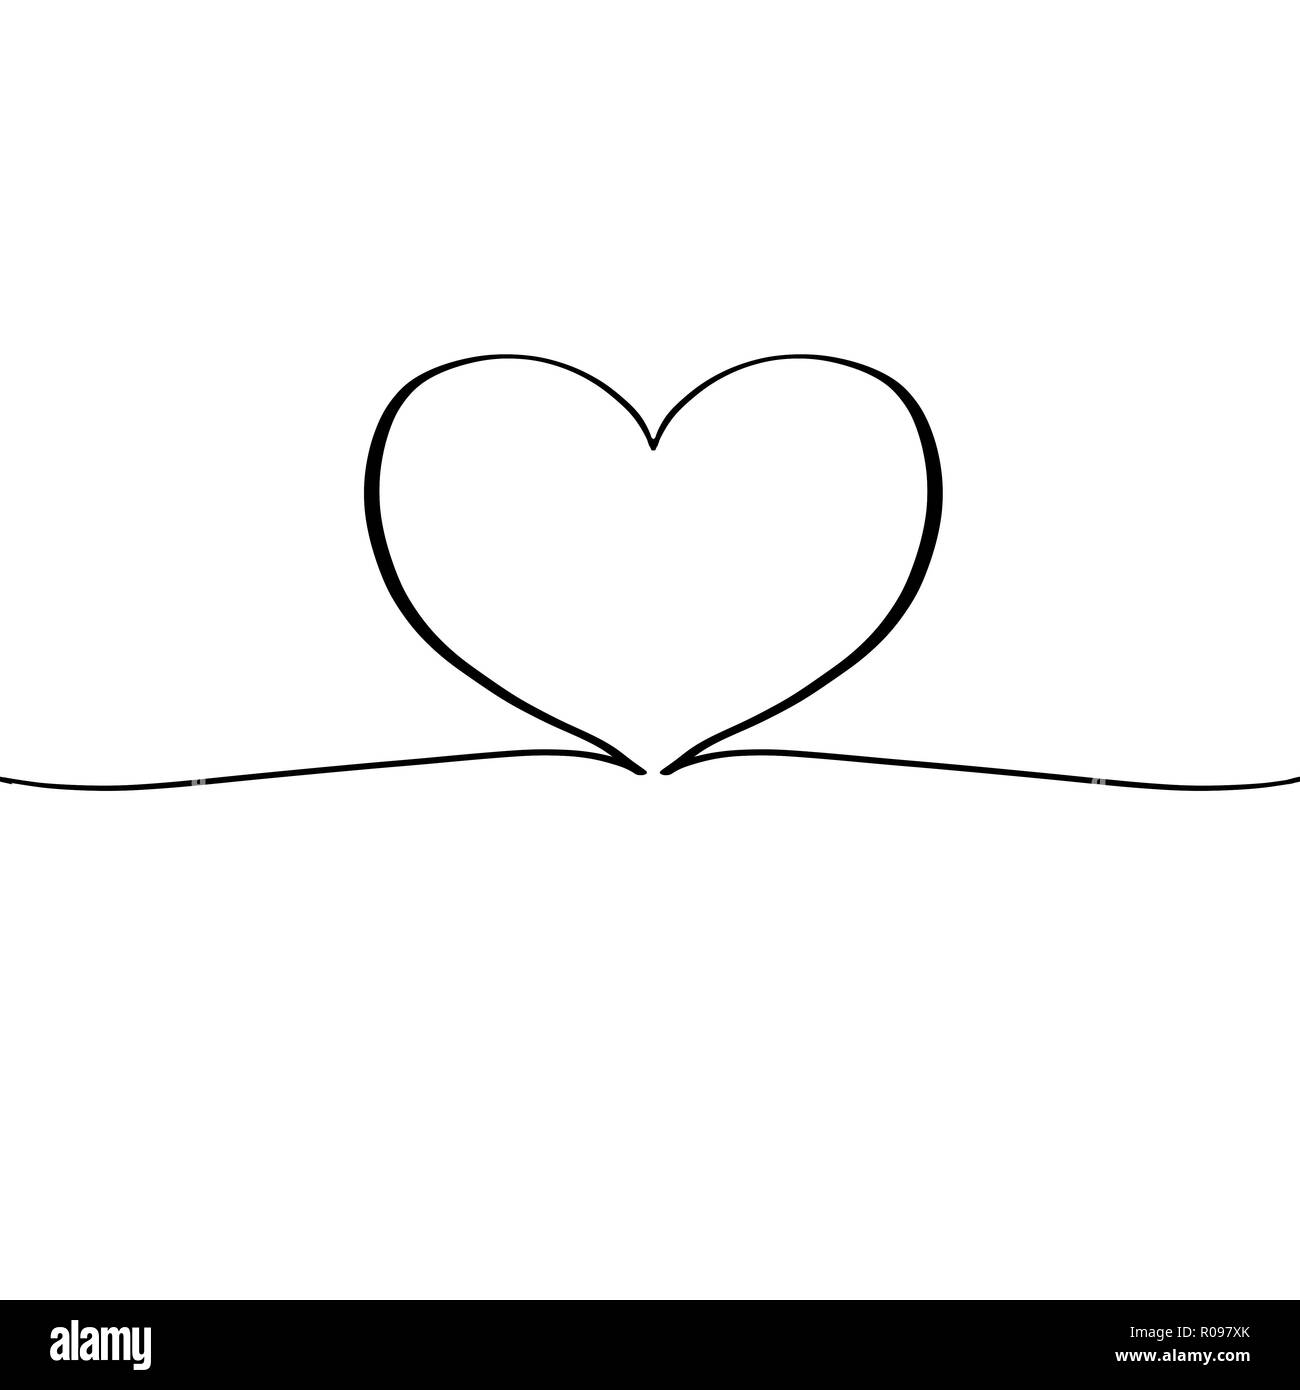 Heart With Continuous Line R Xk